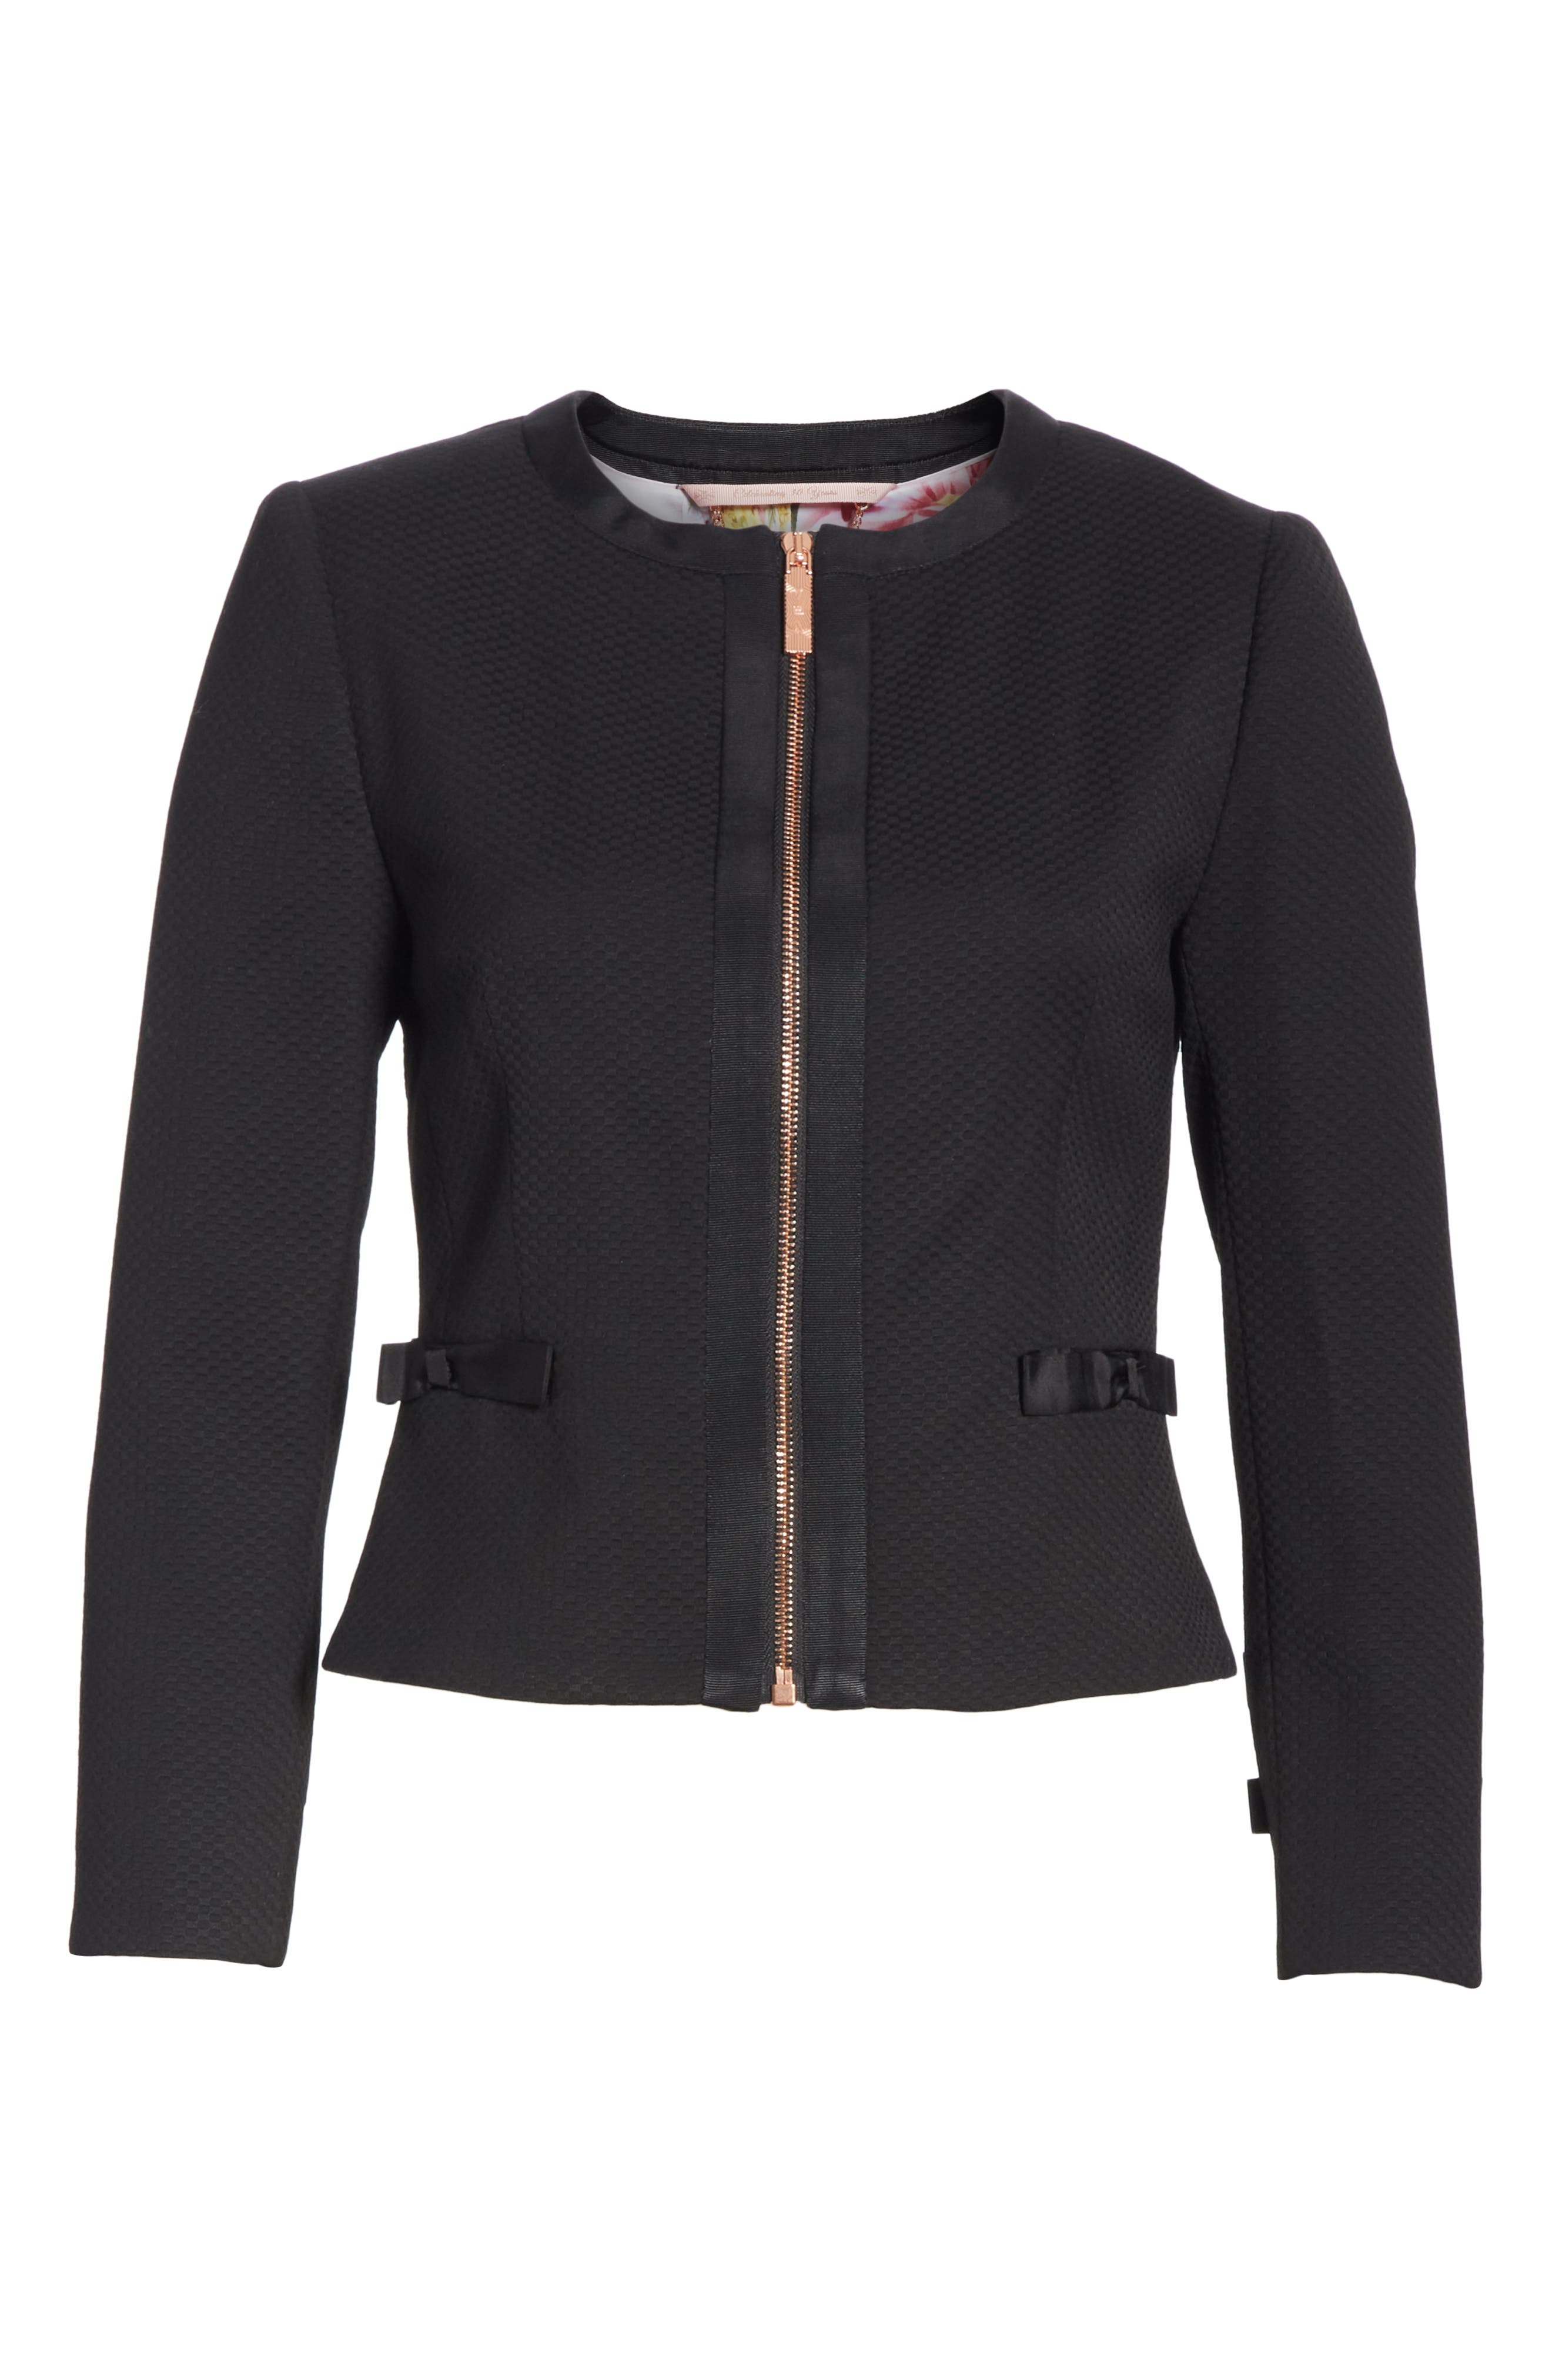 Ted Working Title Nadae Cropped Textured Jacket,                             Alternate thumbnail 5, color,                             BLACK